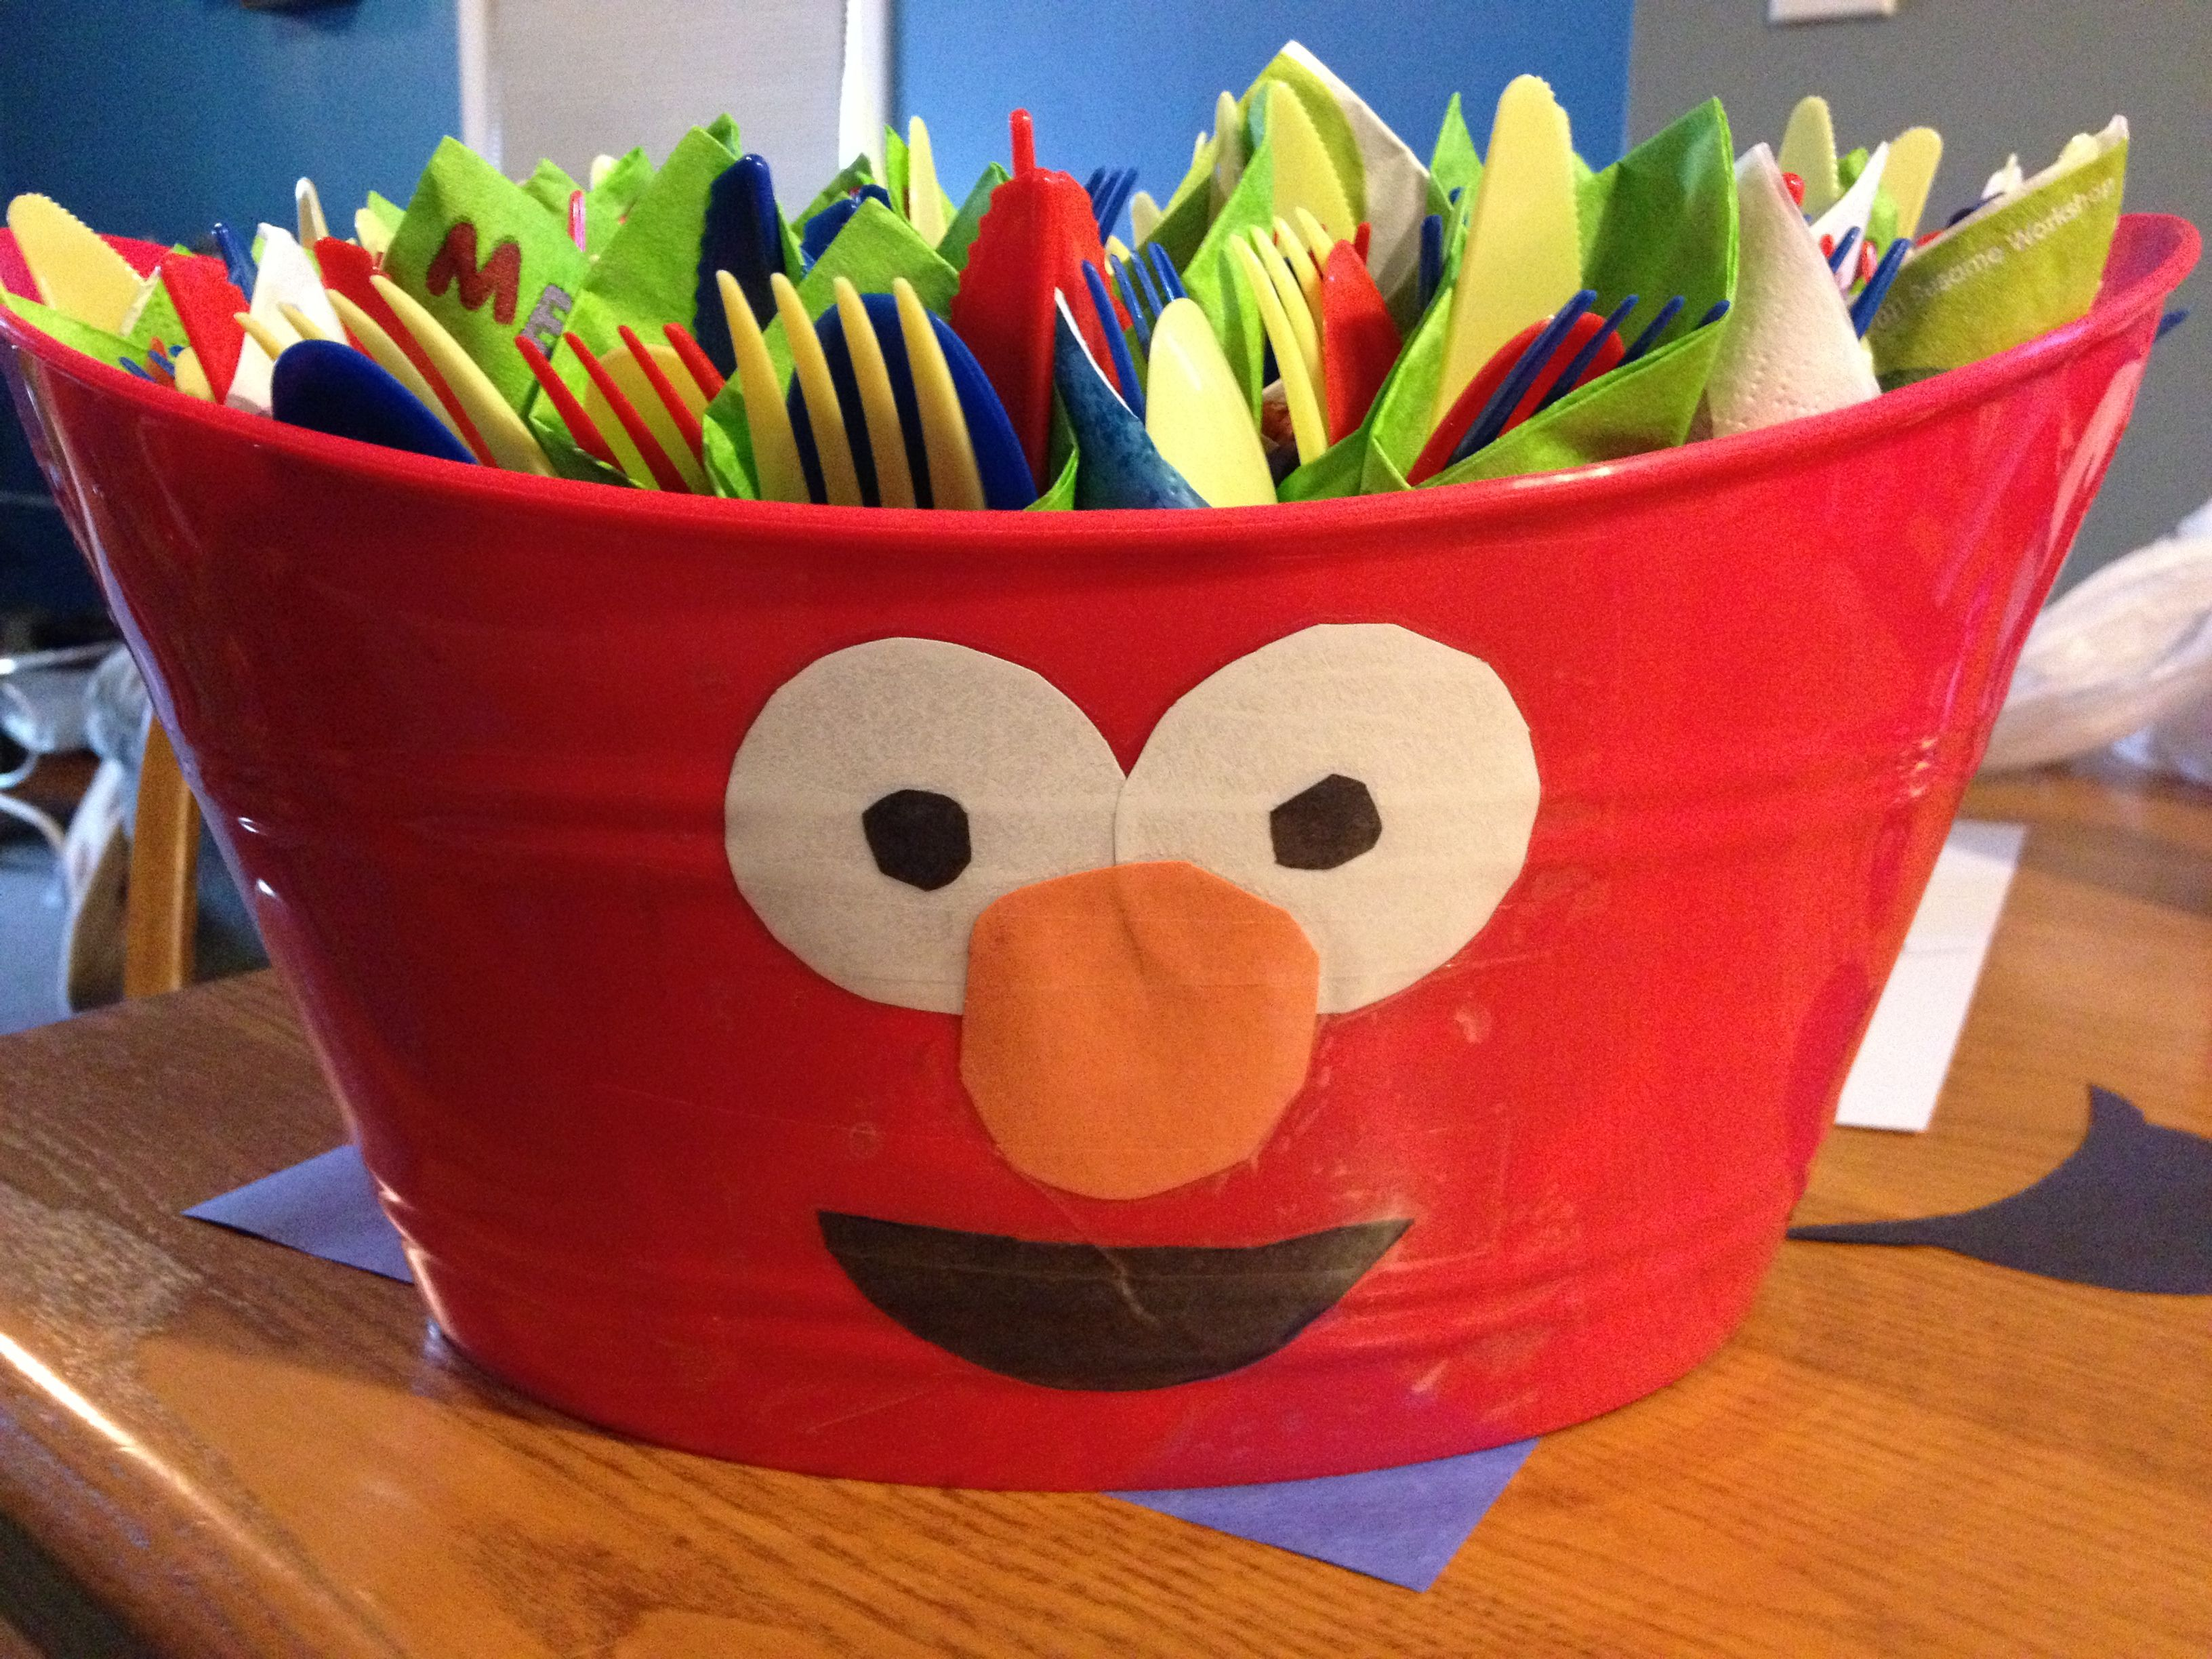 DIY Elmo bowls from the dollar tree for Sesame Street birthday – Homemade Elmo Birthday Invitations